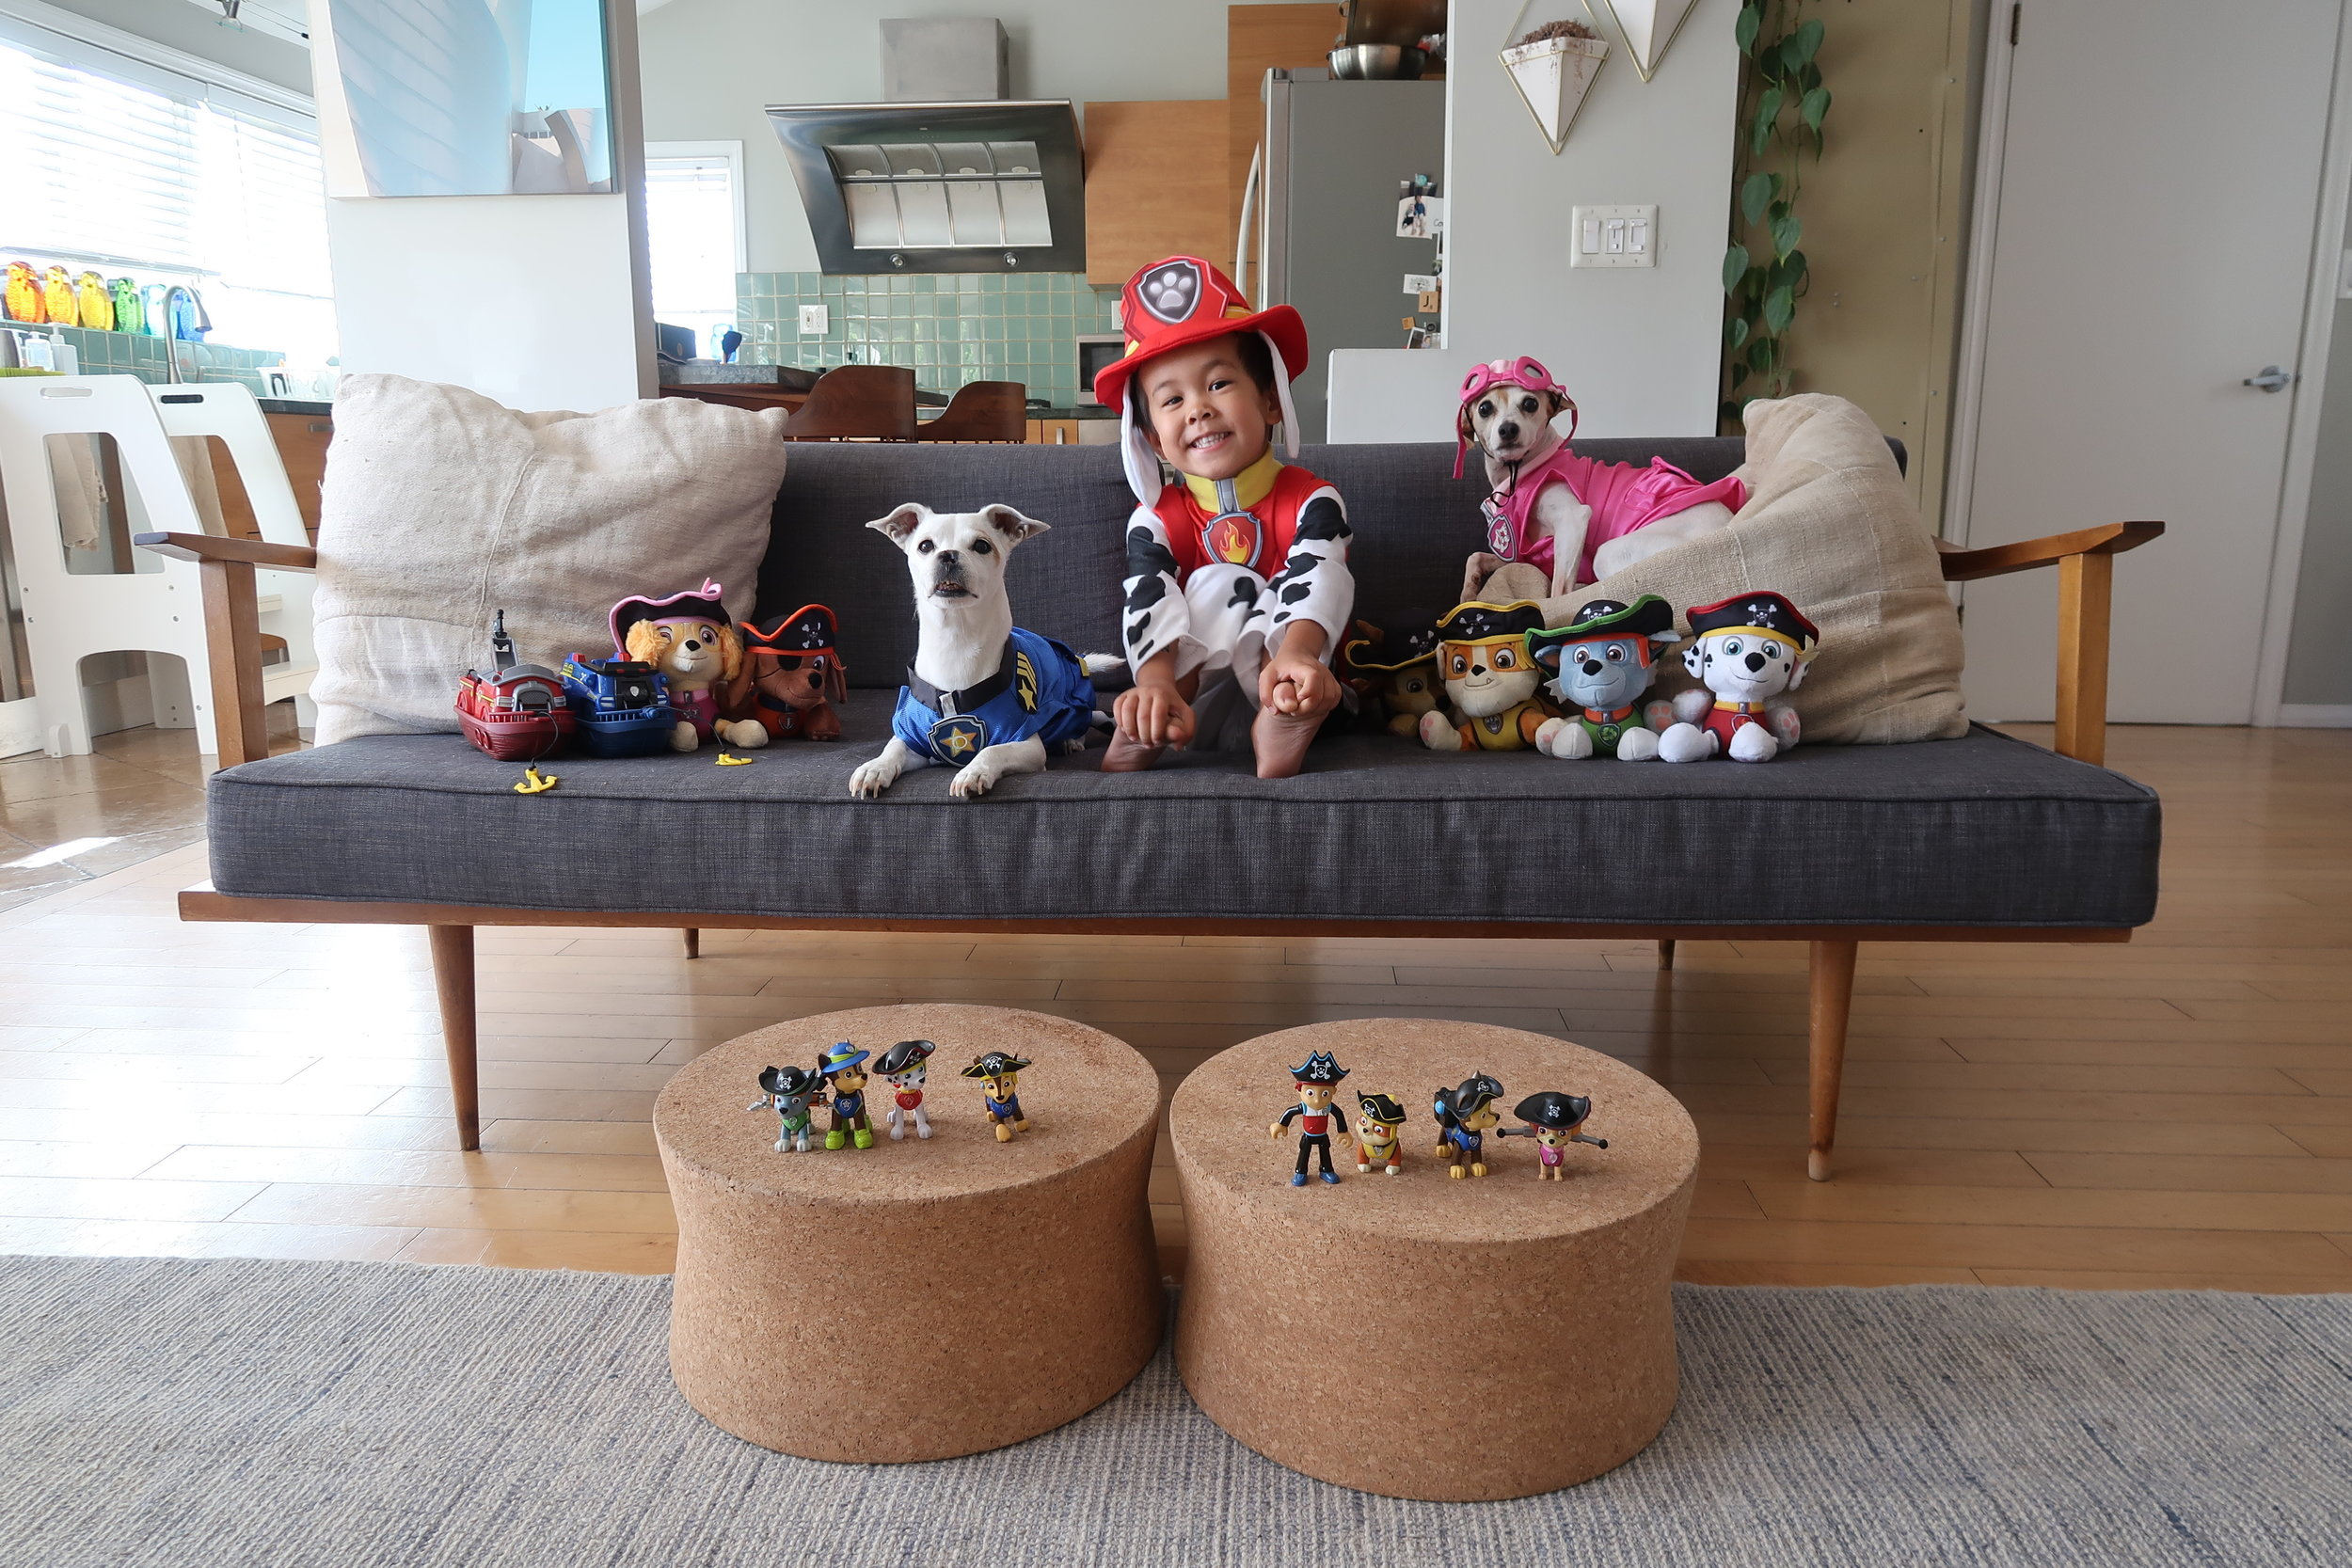 PAW Patrol Marshall + dog costumes